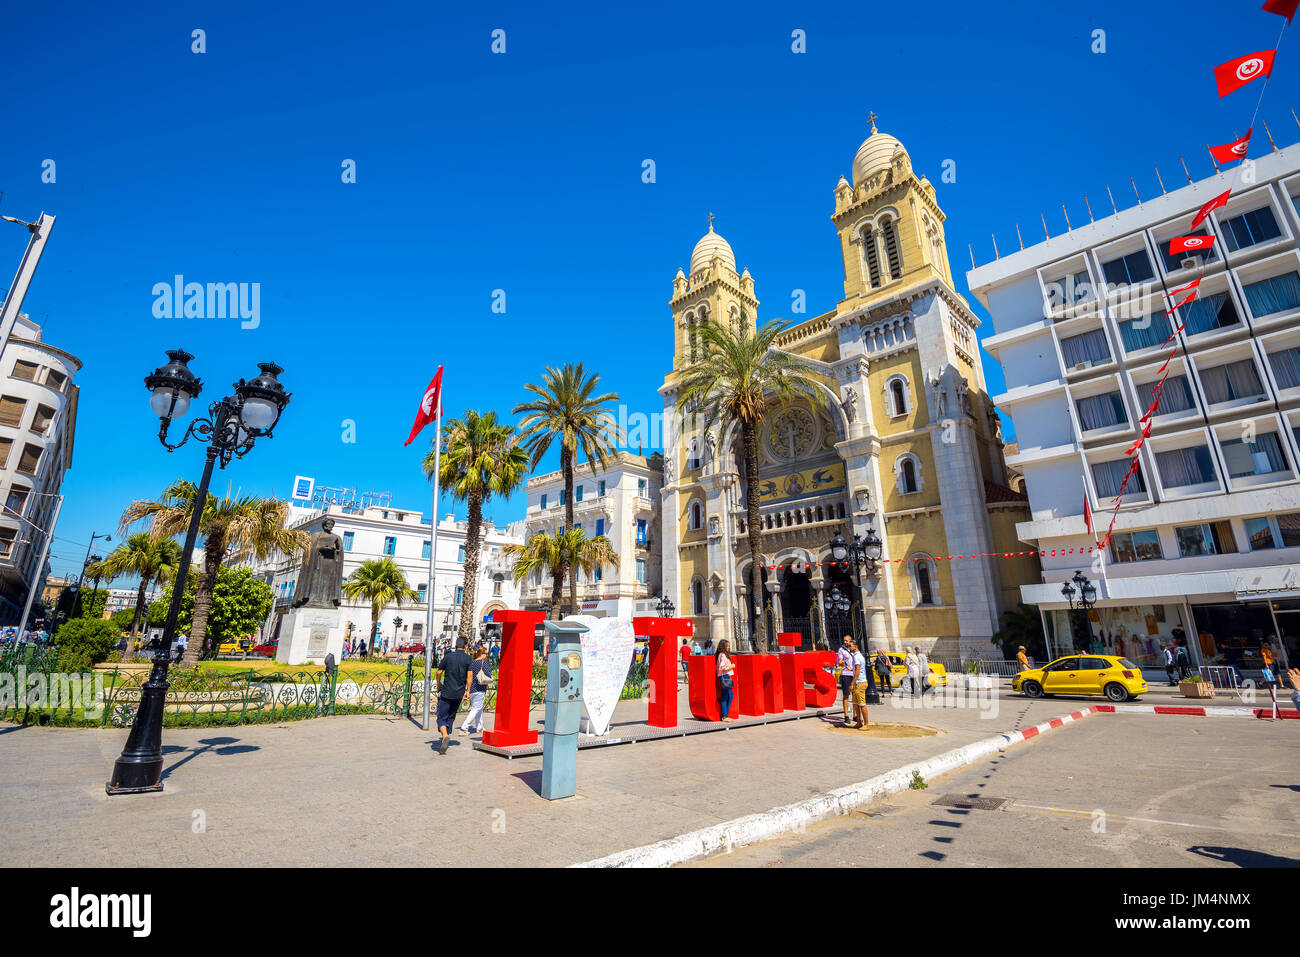 Catholic Cathedral of St. Vincent de Paul. Tunis, Tunisia, North Africa - Stock Image